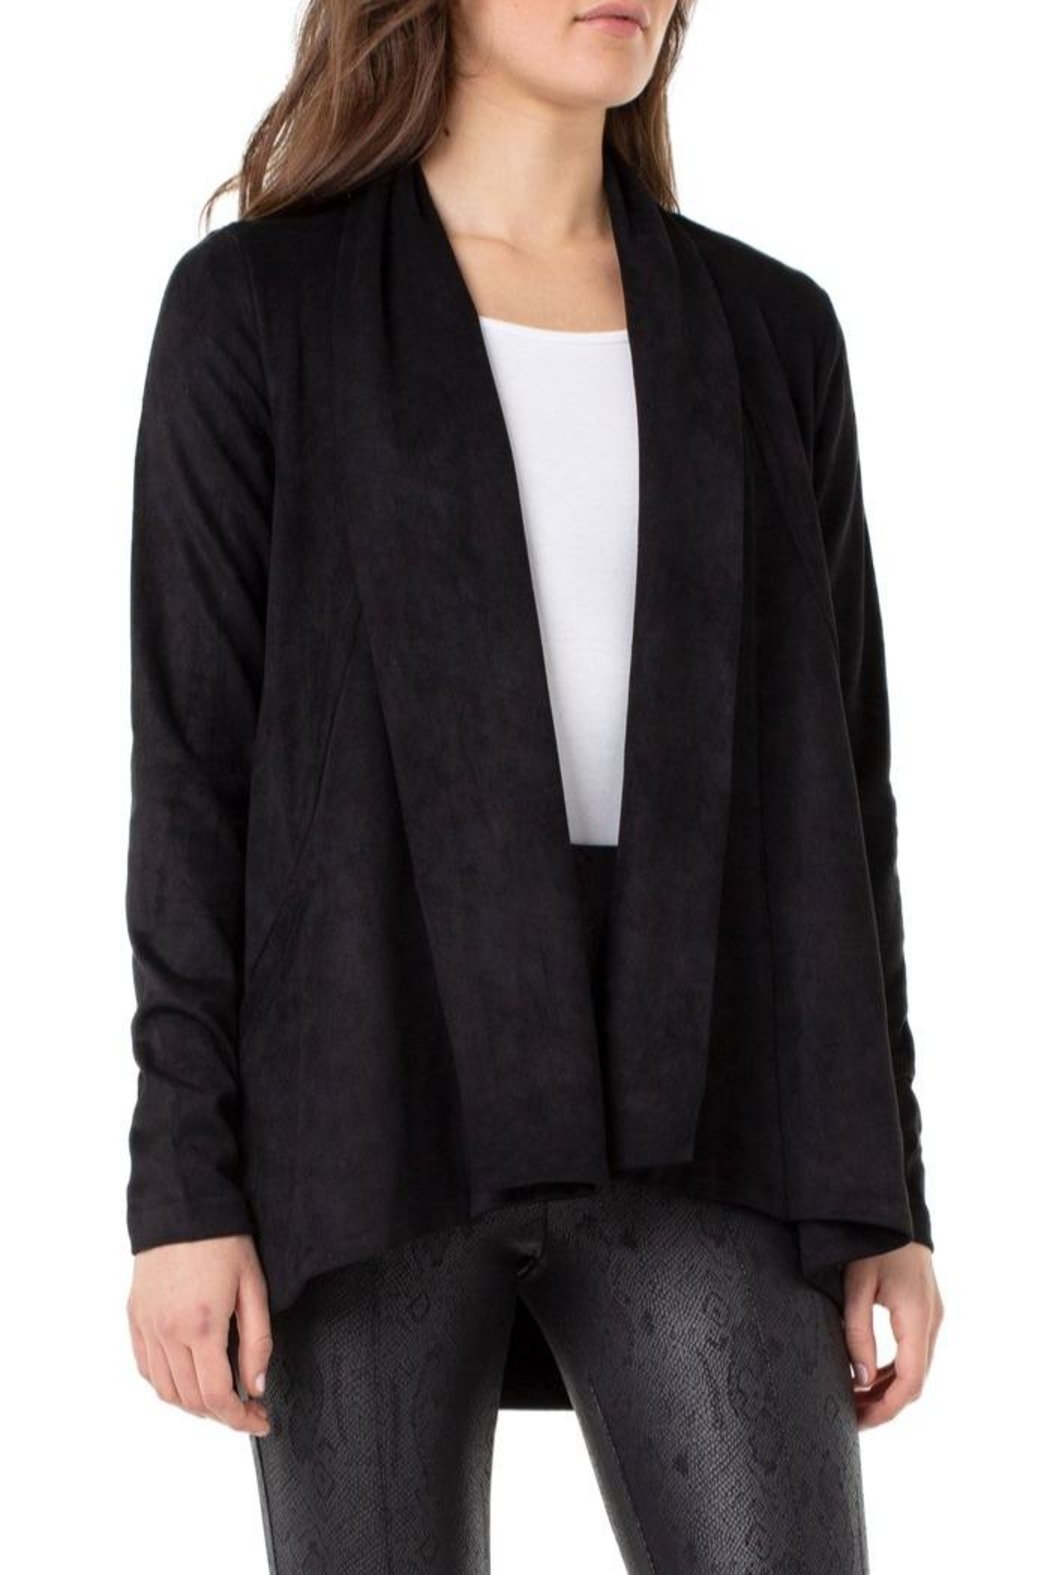 Liverpool Jean Company Shawl Double-Front Cardigan - Main Image